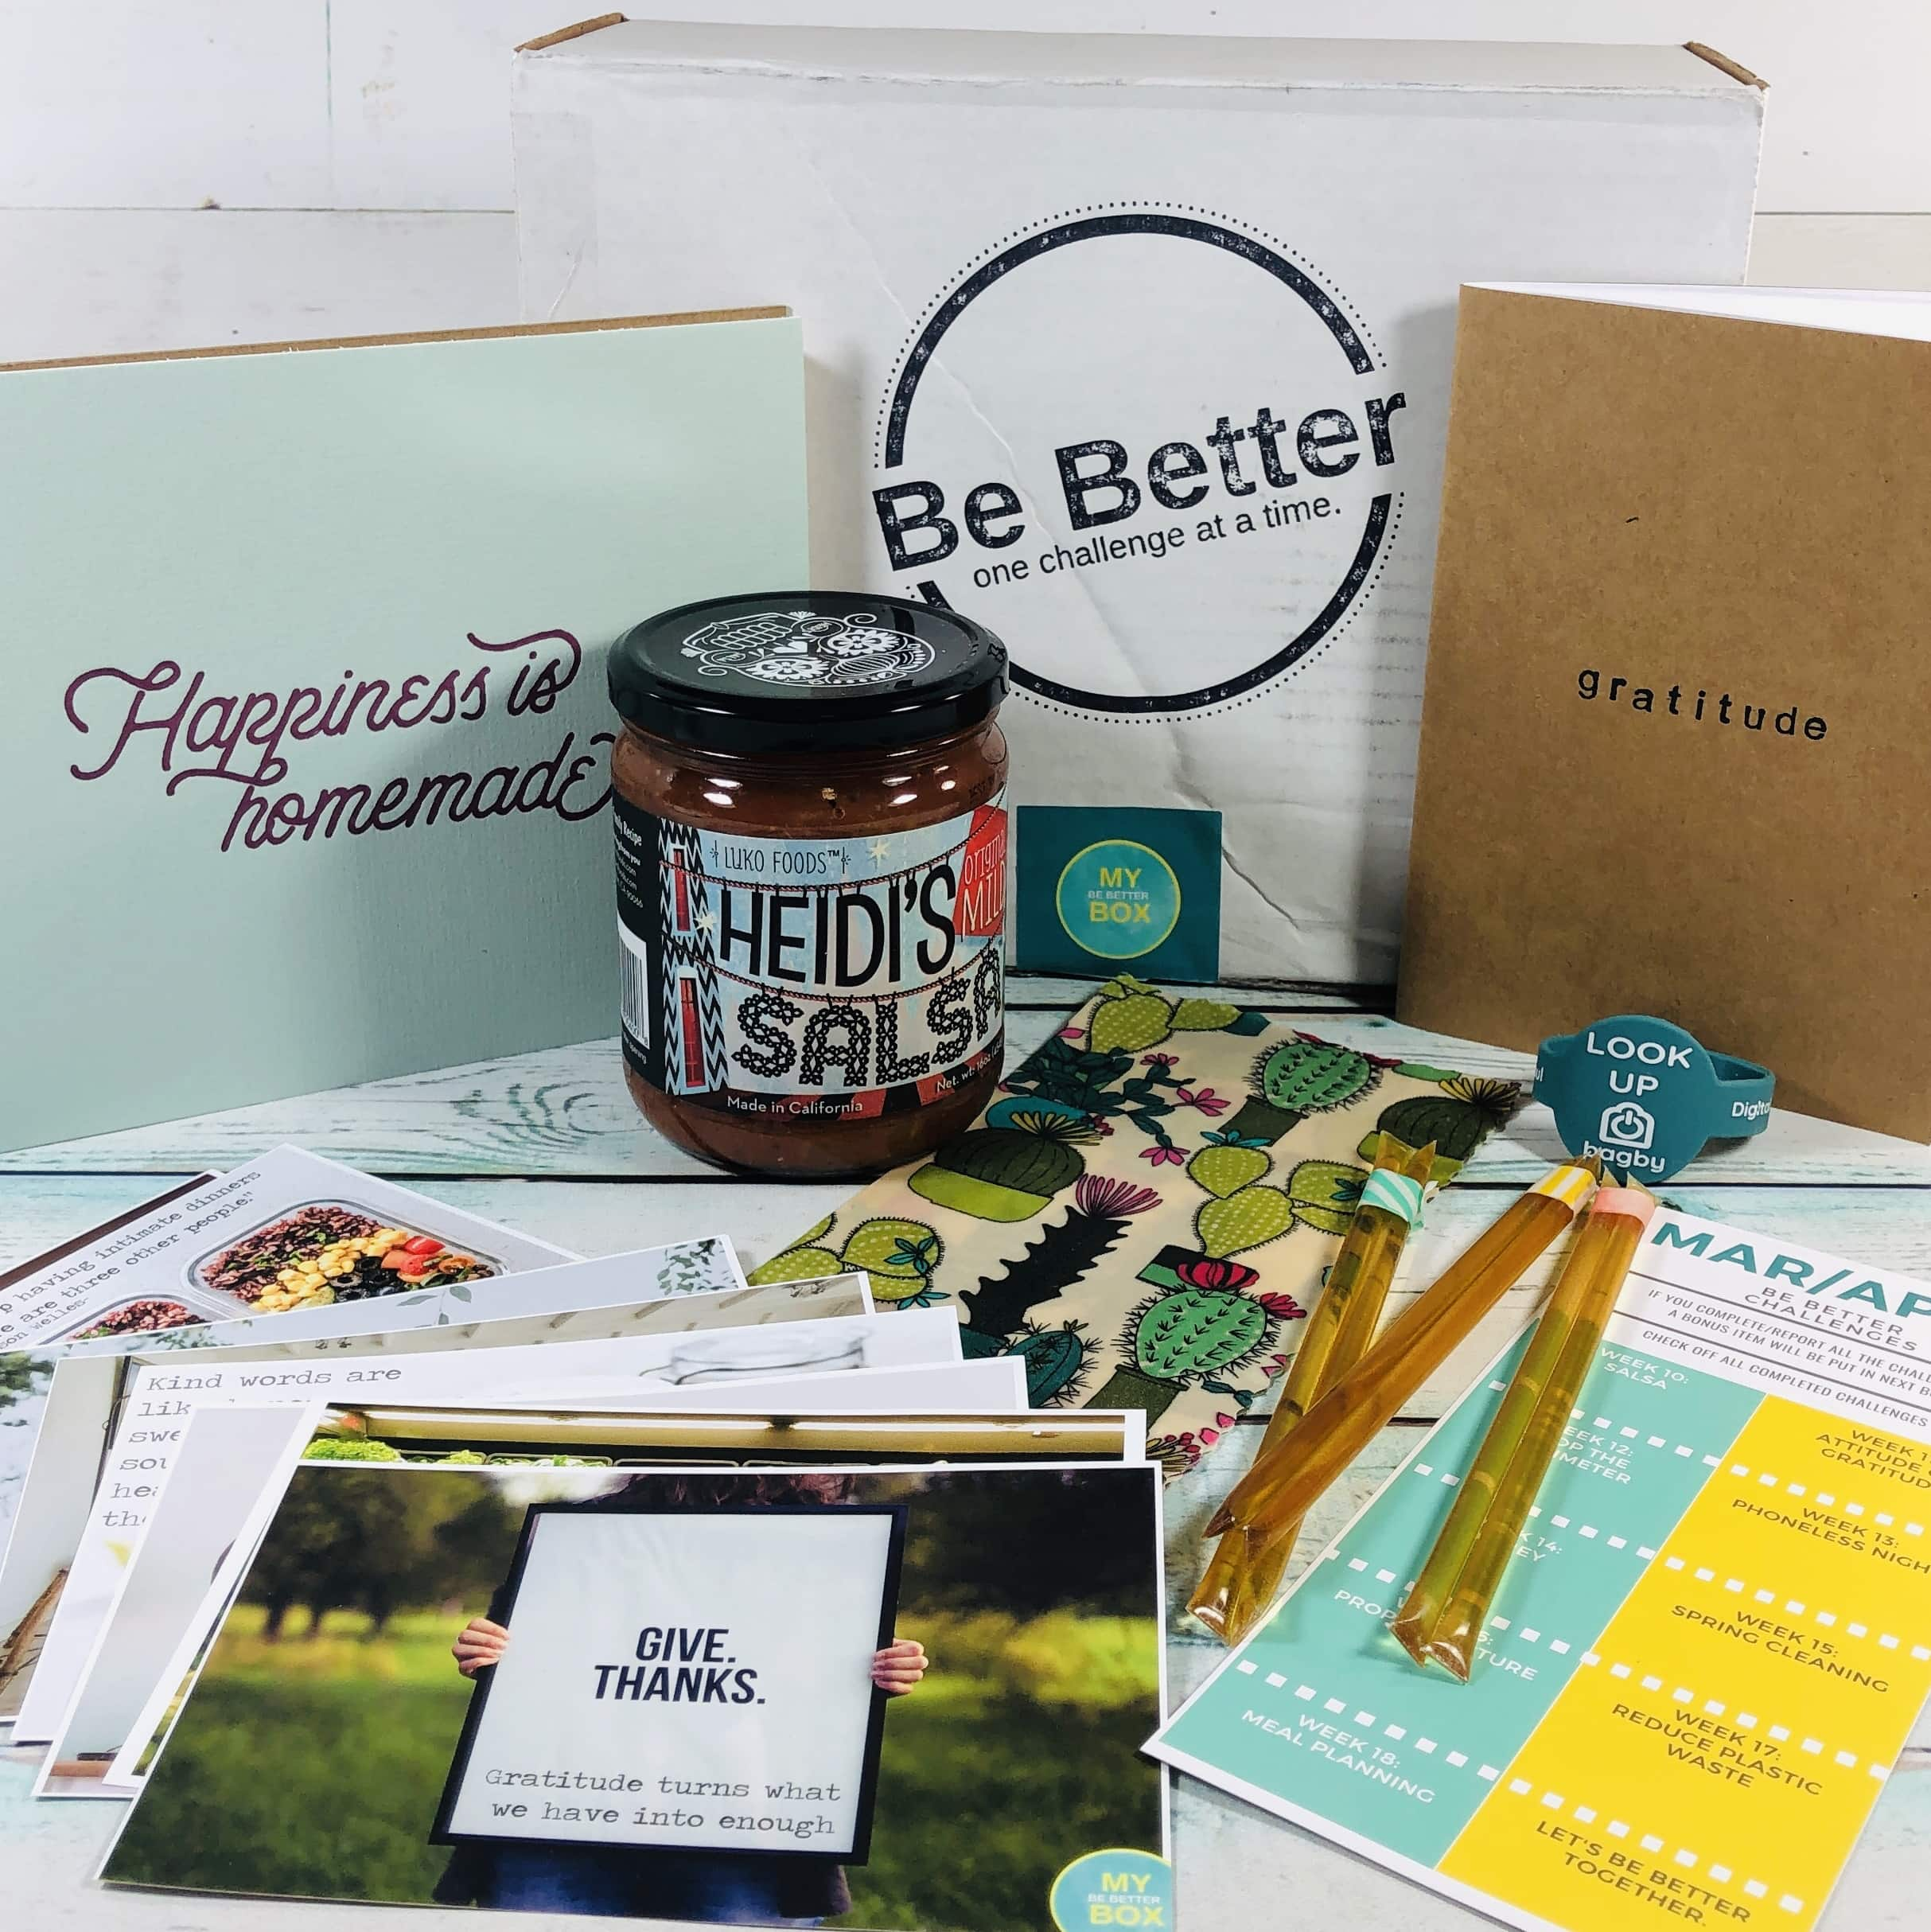 My Be Better Box March-April 2019 Subscription Box Review